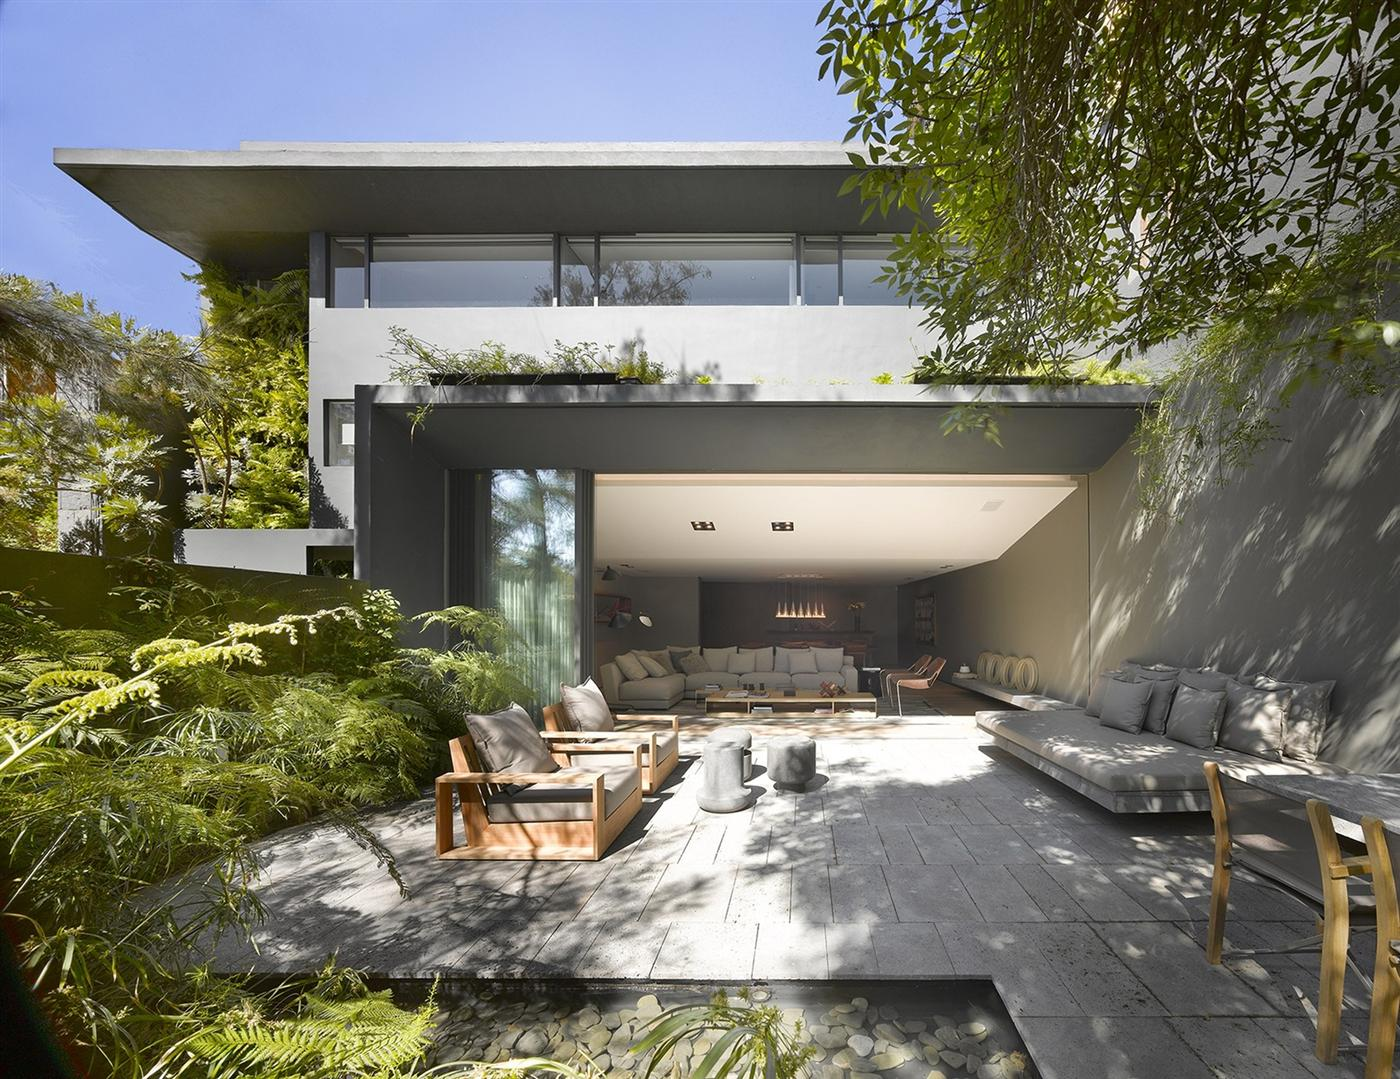 The Barranca House in Mexico City 2